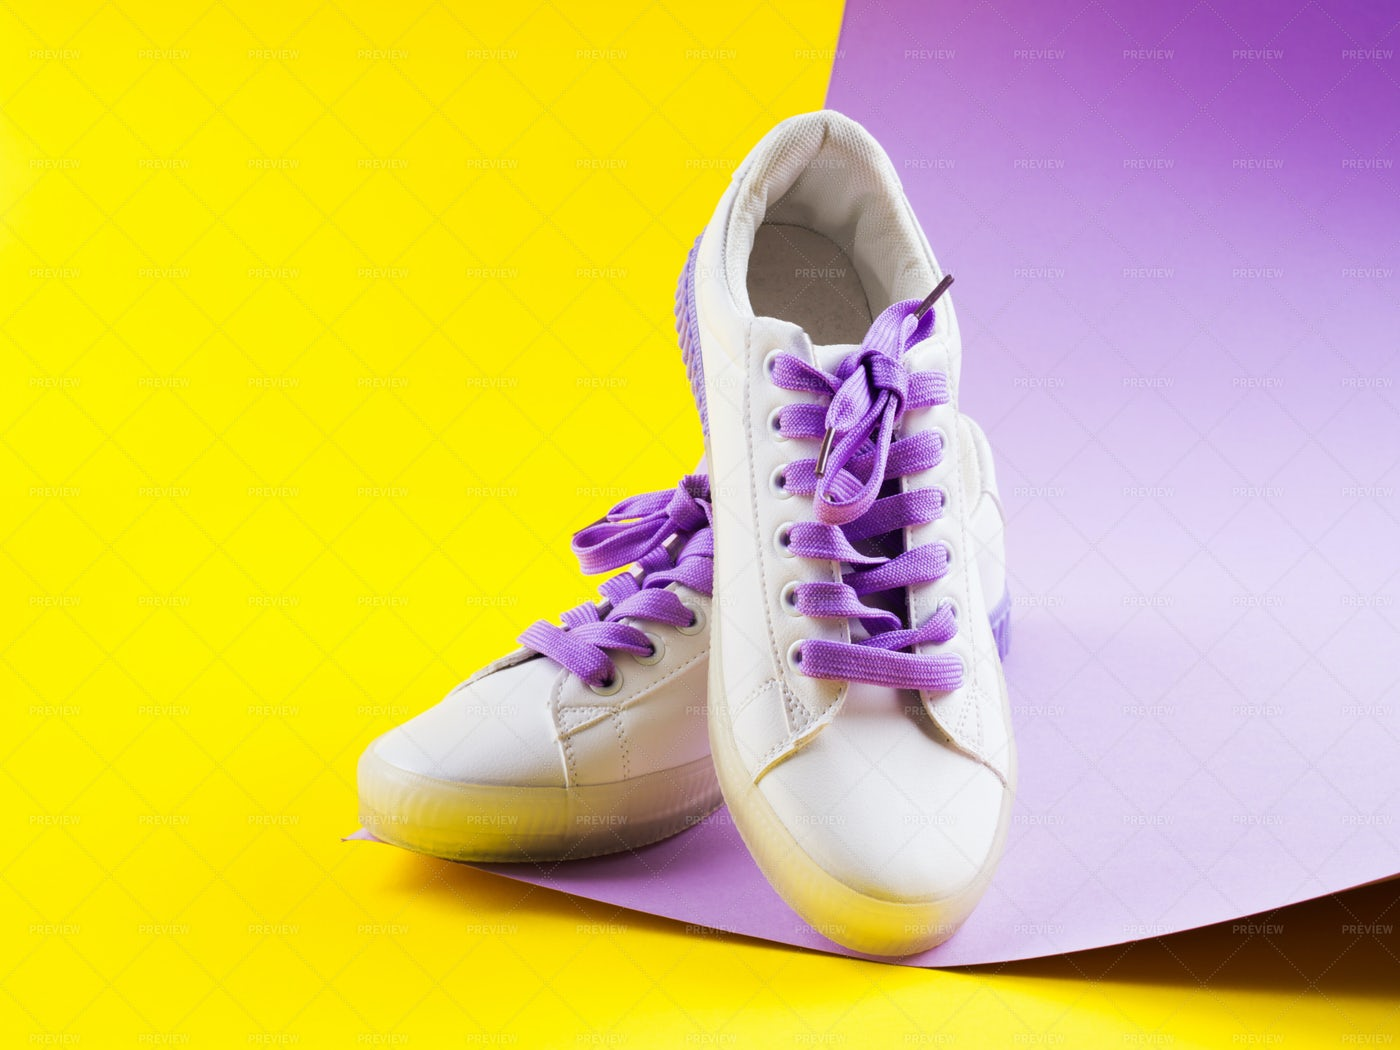 Sneakers With Purple Laces: Stock Photos